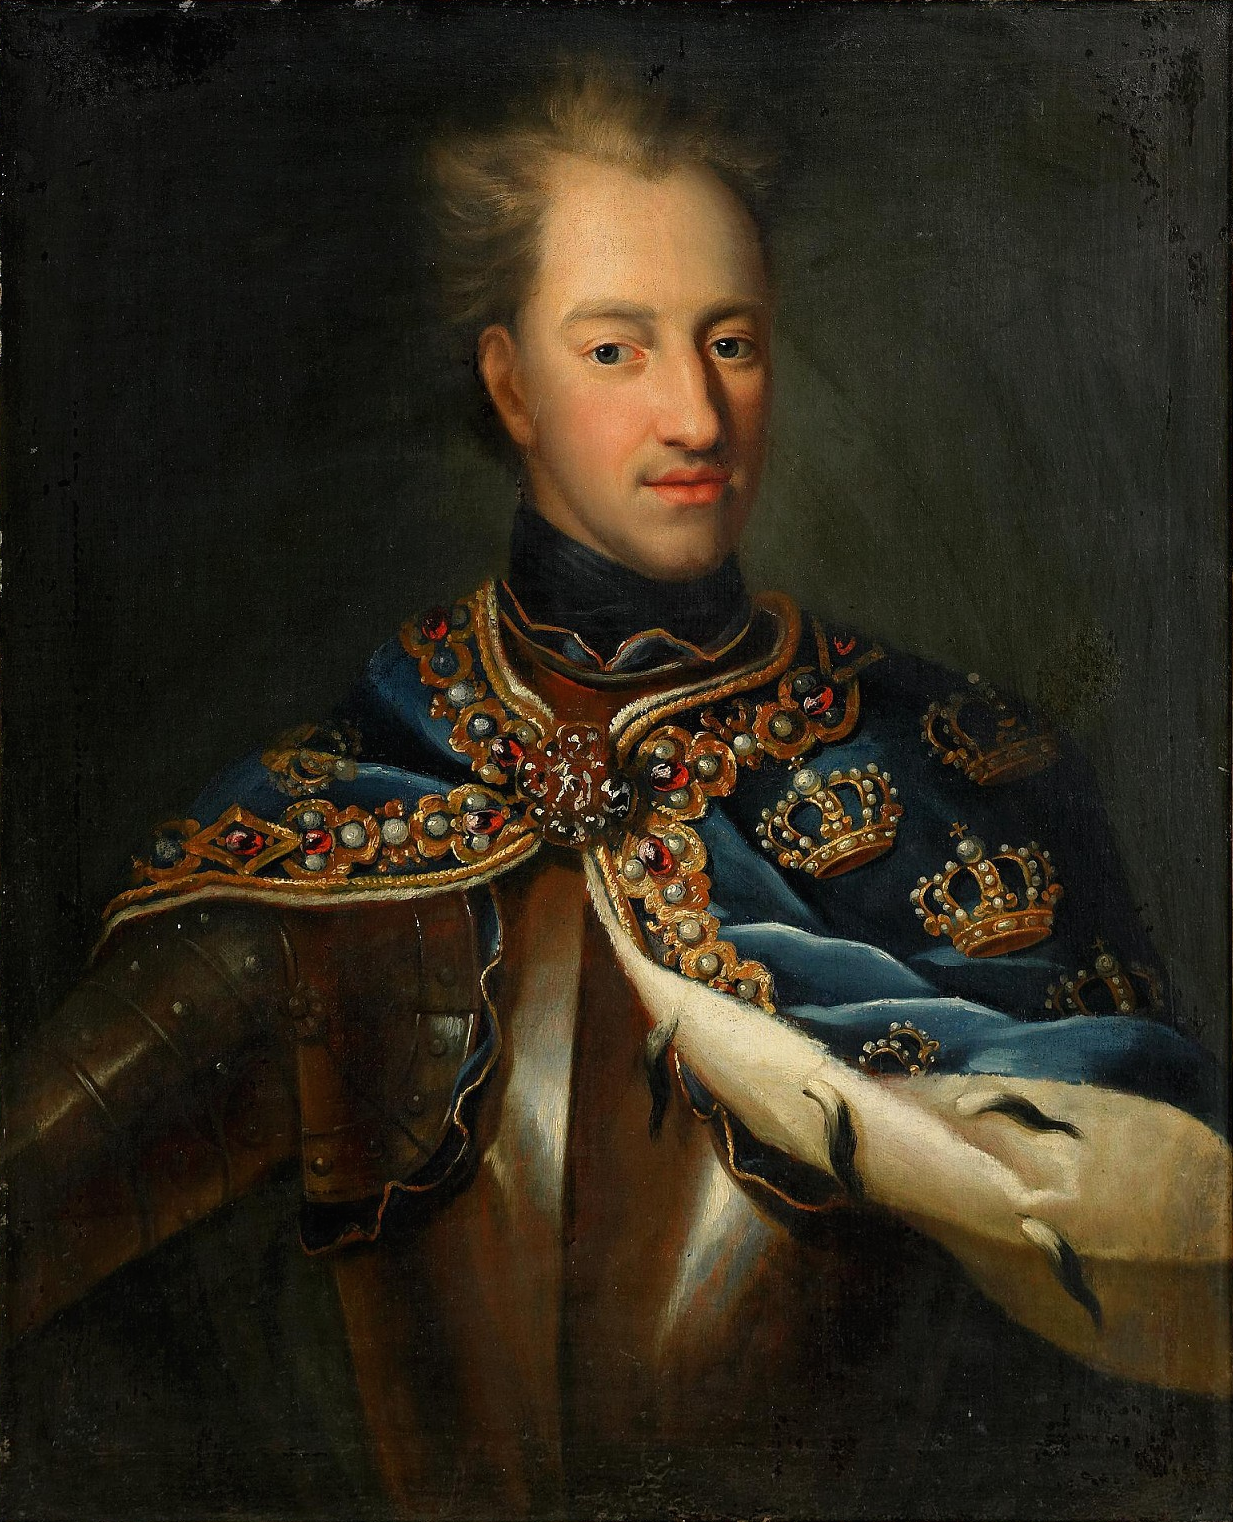 king charles xii Buy charles xii - king of sweden by carl klingspor (isbn: 9781544960258) from amazon's book store everyday low prices and free delivery on eligible orders.